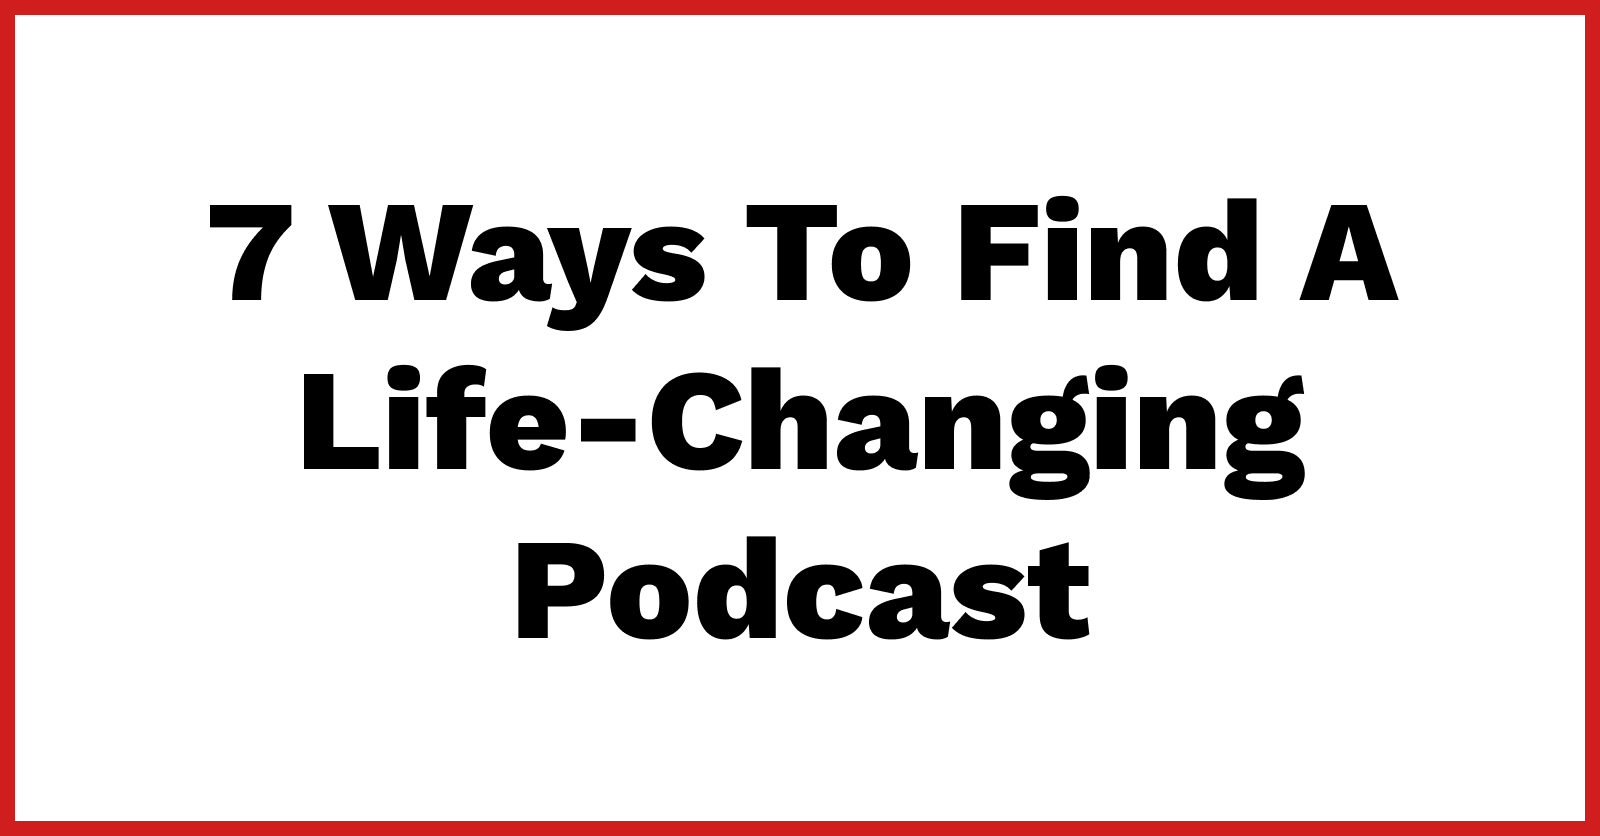 7 ways to find a life-changing podcast